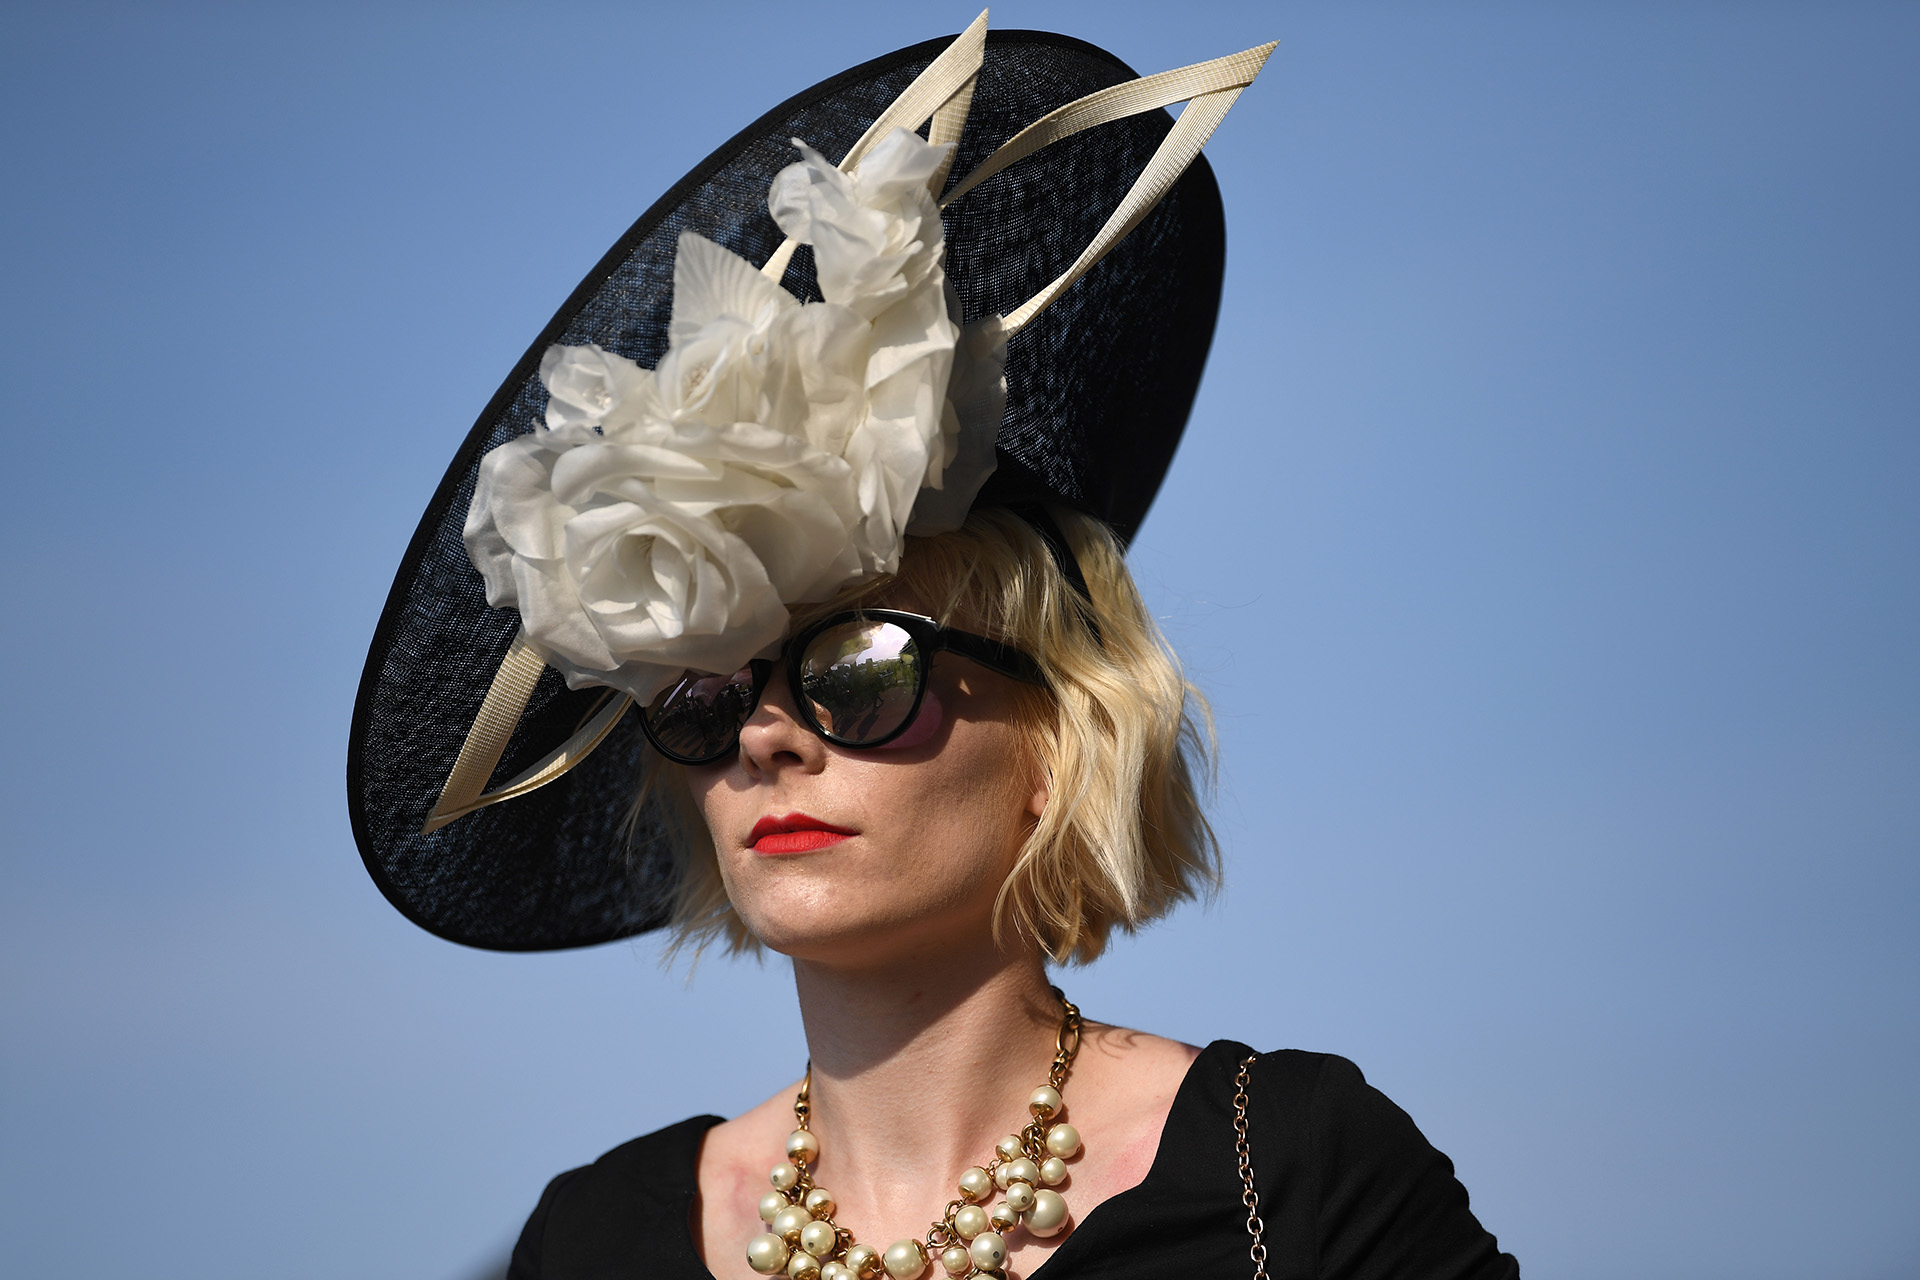 El dress code del evento exige sombreros, tocados o fascinators